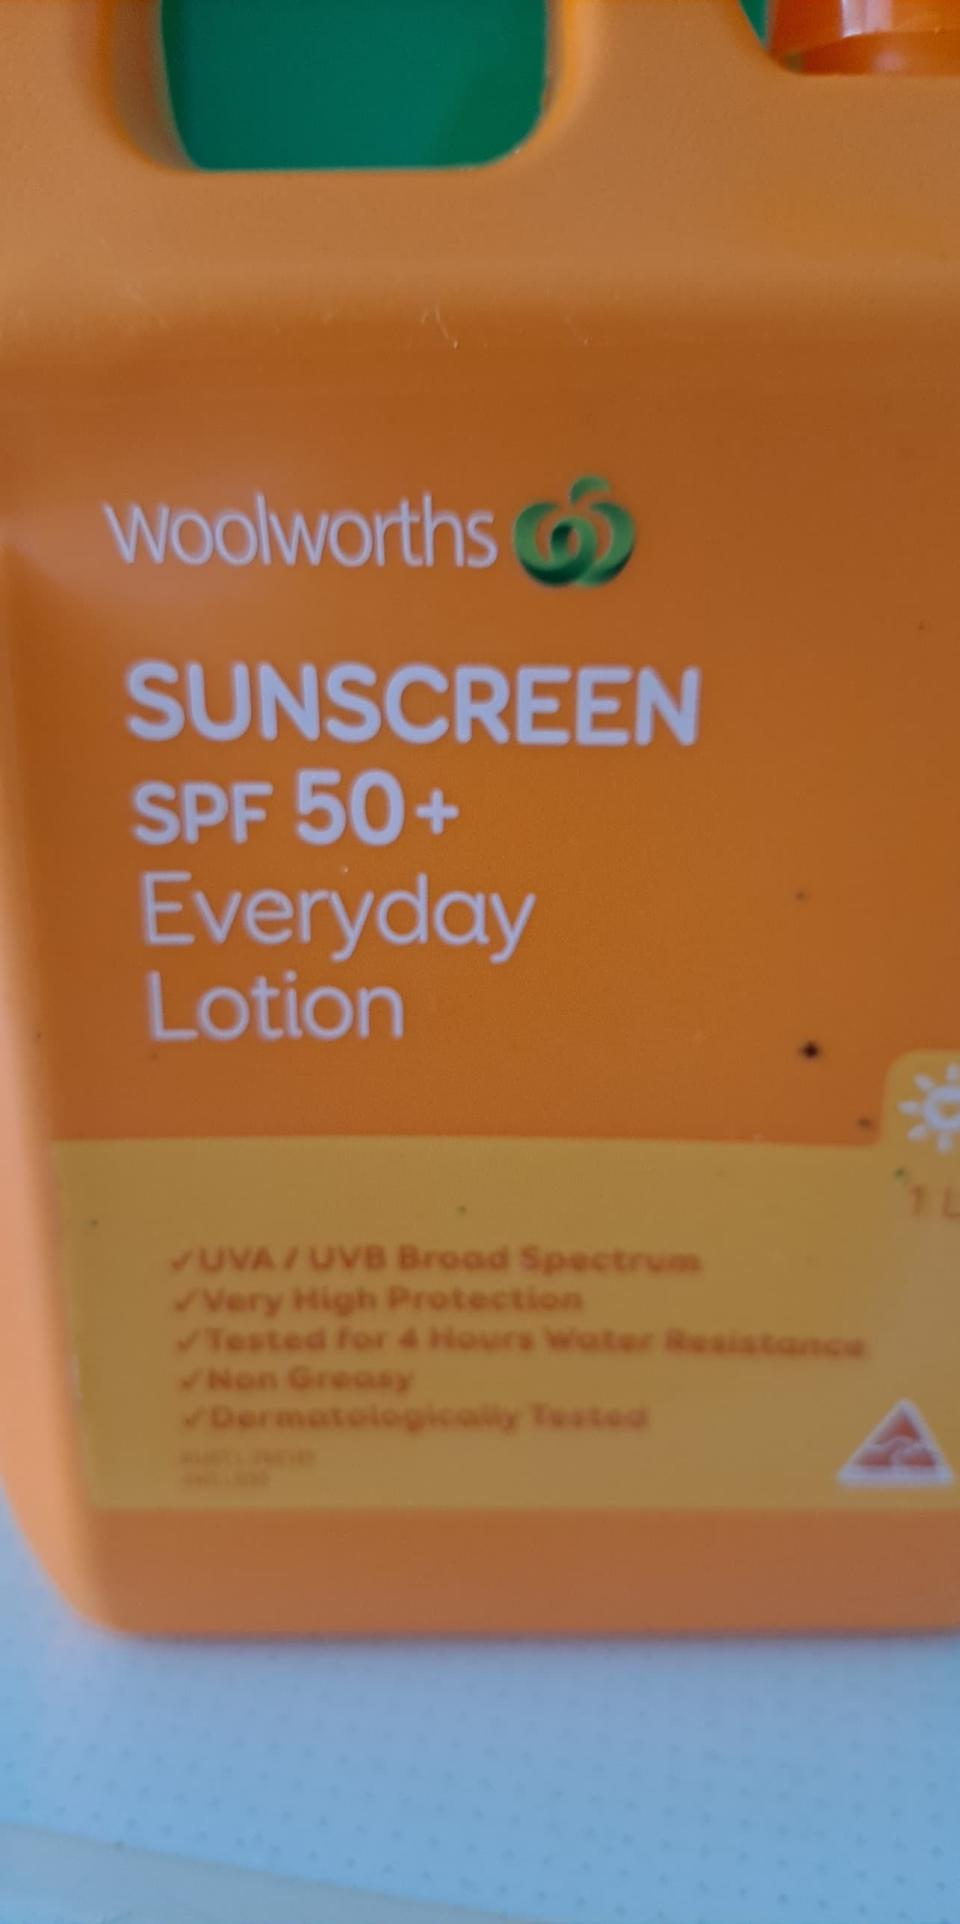 The sunscreen was supposedly water resistant for four hours. Source: Supplied